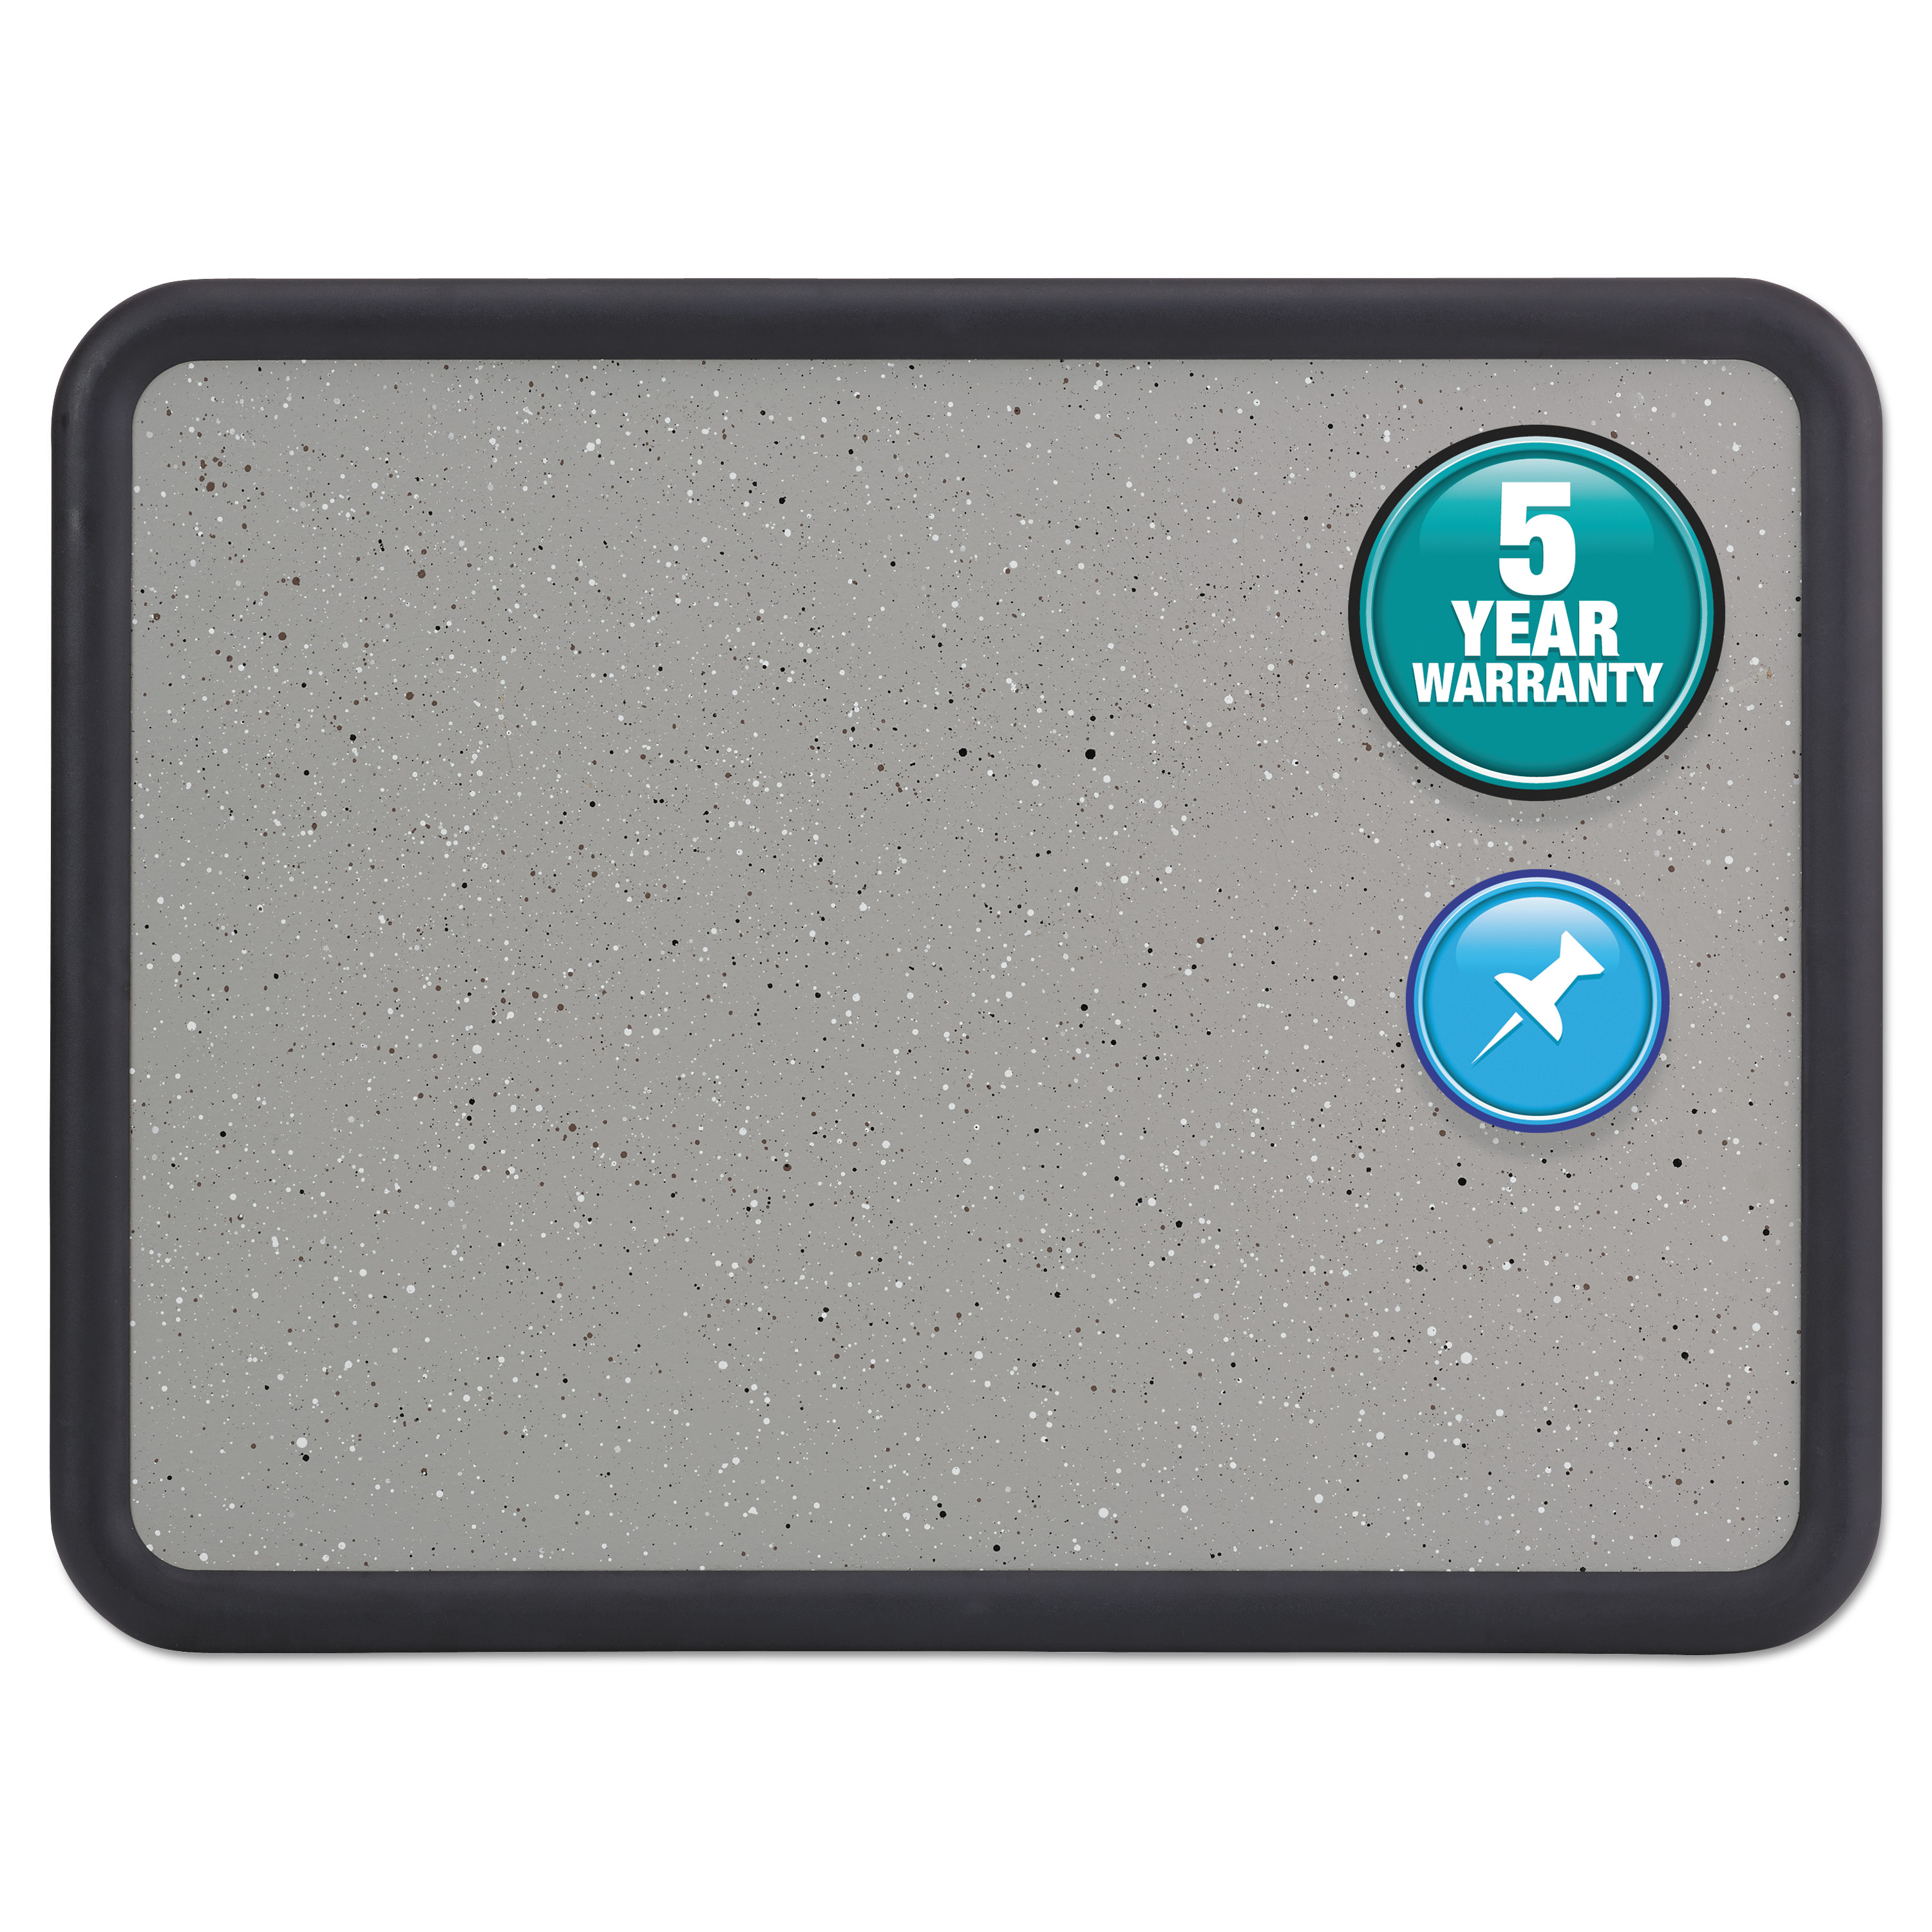 Quartet Contour Granite Gray Tack Board, 48 x 36, Black Frame -QRT699375